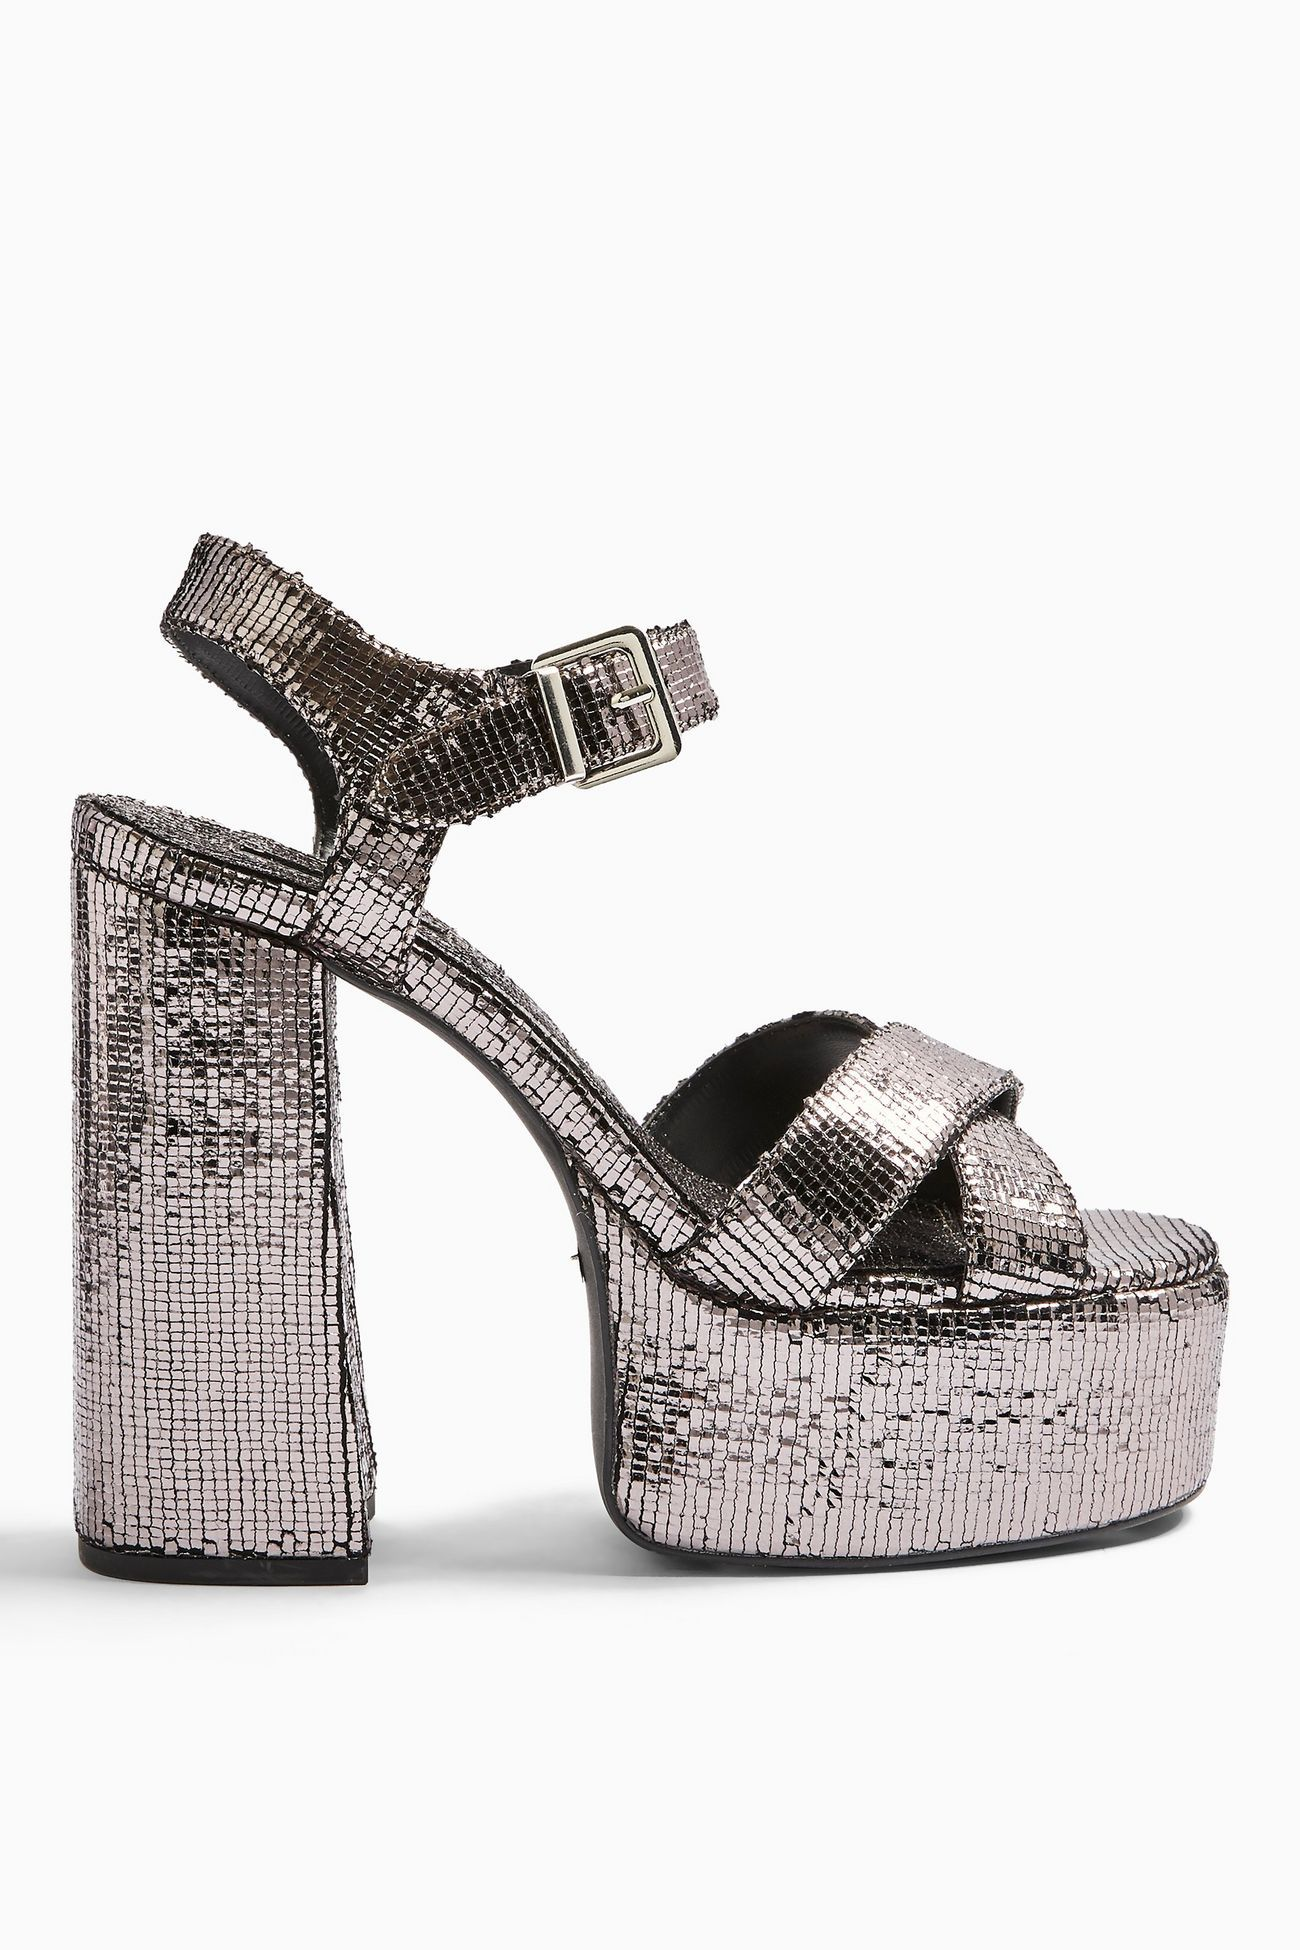 RUDY Pewter Platform Shoes in 2020